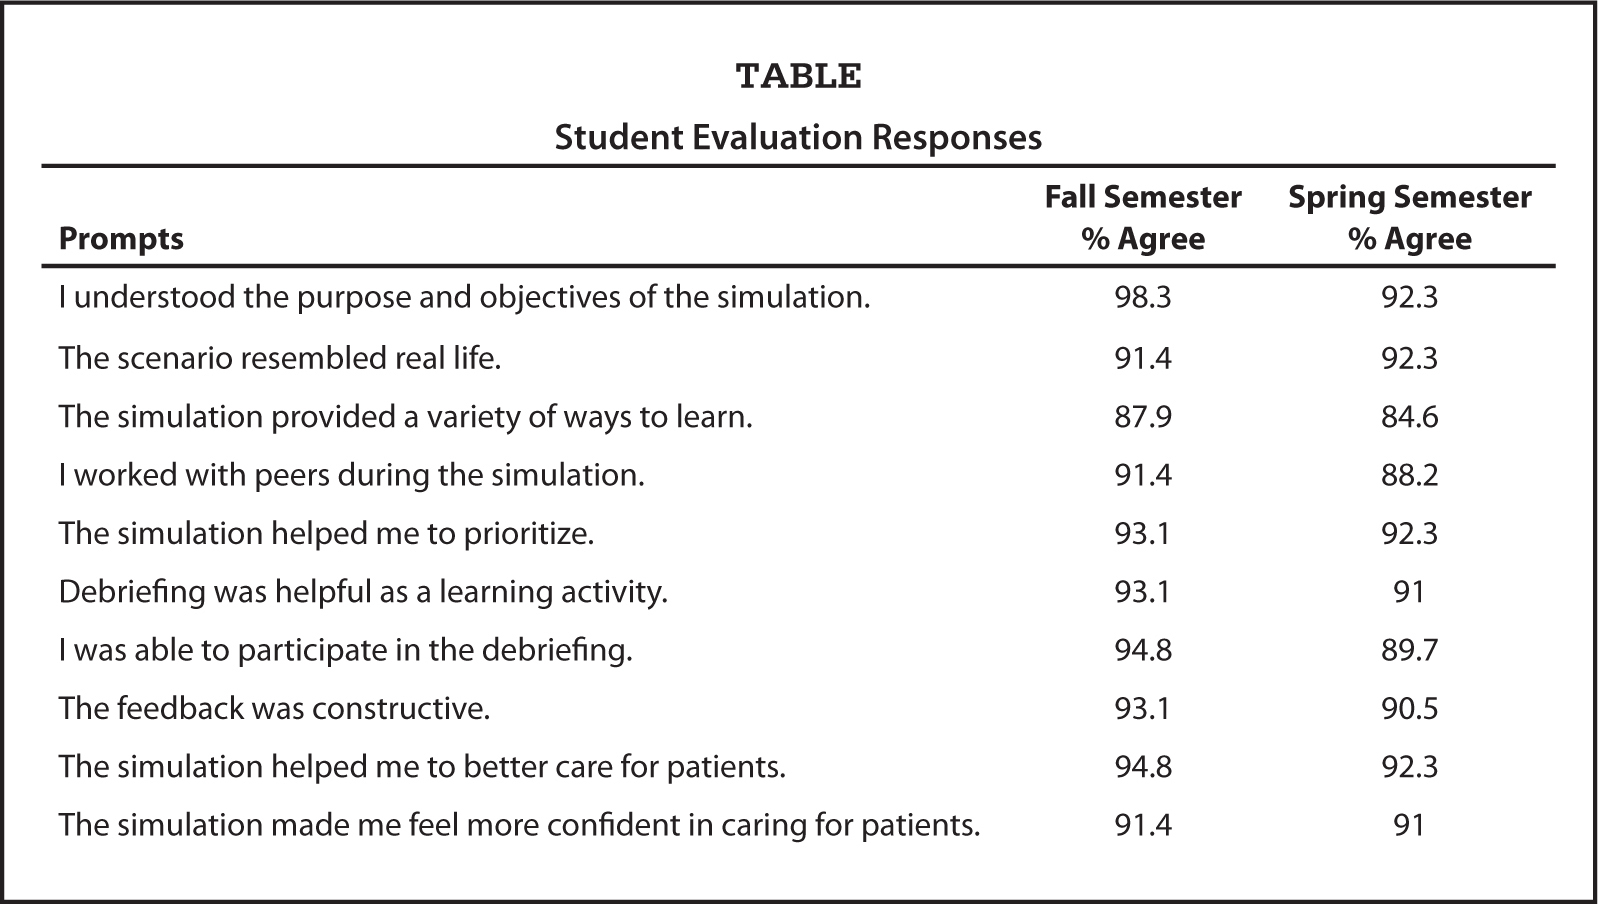 Collaborative Learning In Nursing Simulation Near Peer Teaching Using Standardized Patients